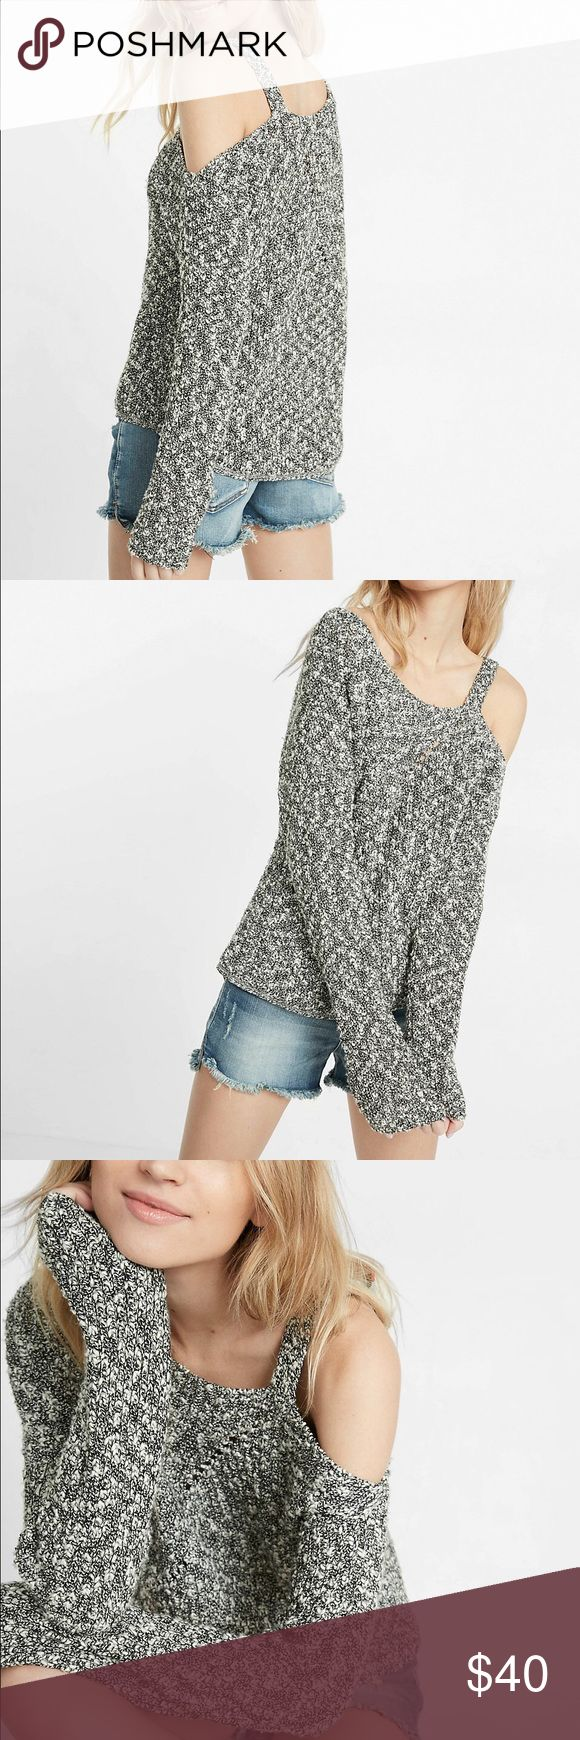 NWT One Shoulder Hi-Lo Cutout Sweater from Express When you and your fave sweater need a break, try out this hi-lo, one shoulder wonder. Color is Marled Gray. The cozy, substantial shaker knit delivers a comfortable layer of warmth over curve-loving, distressed denim leggings ALSO LISTED. Express Tops Sweatshirts & Hoodies